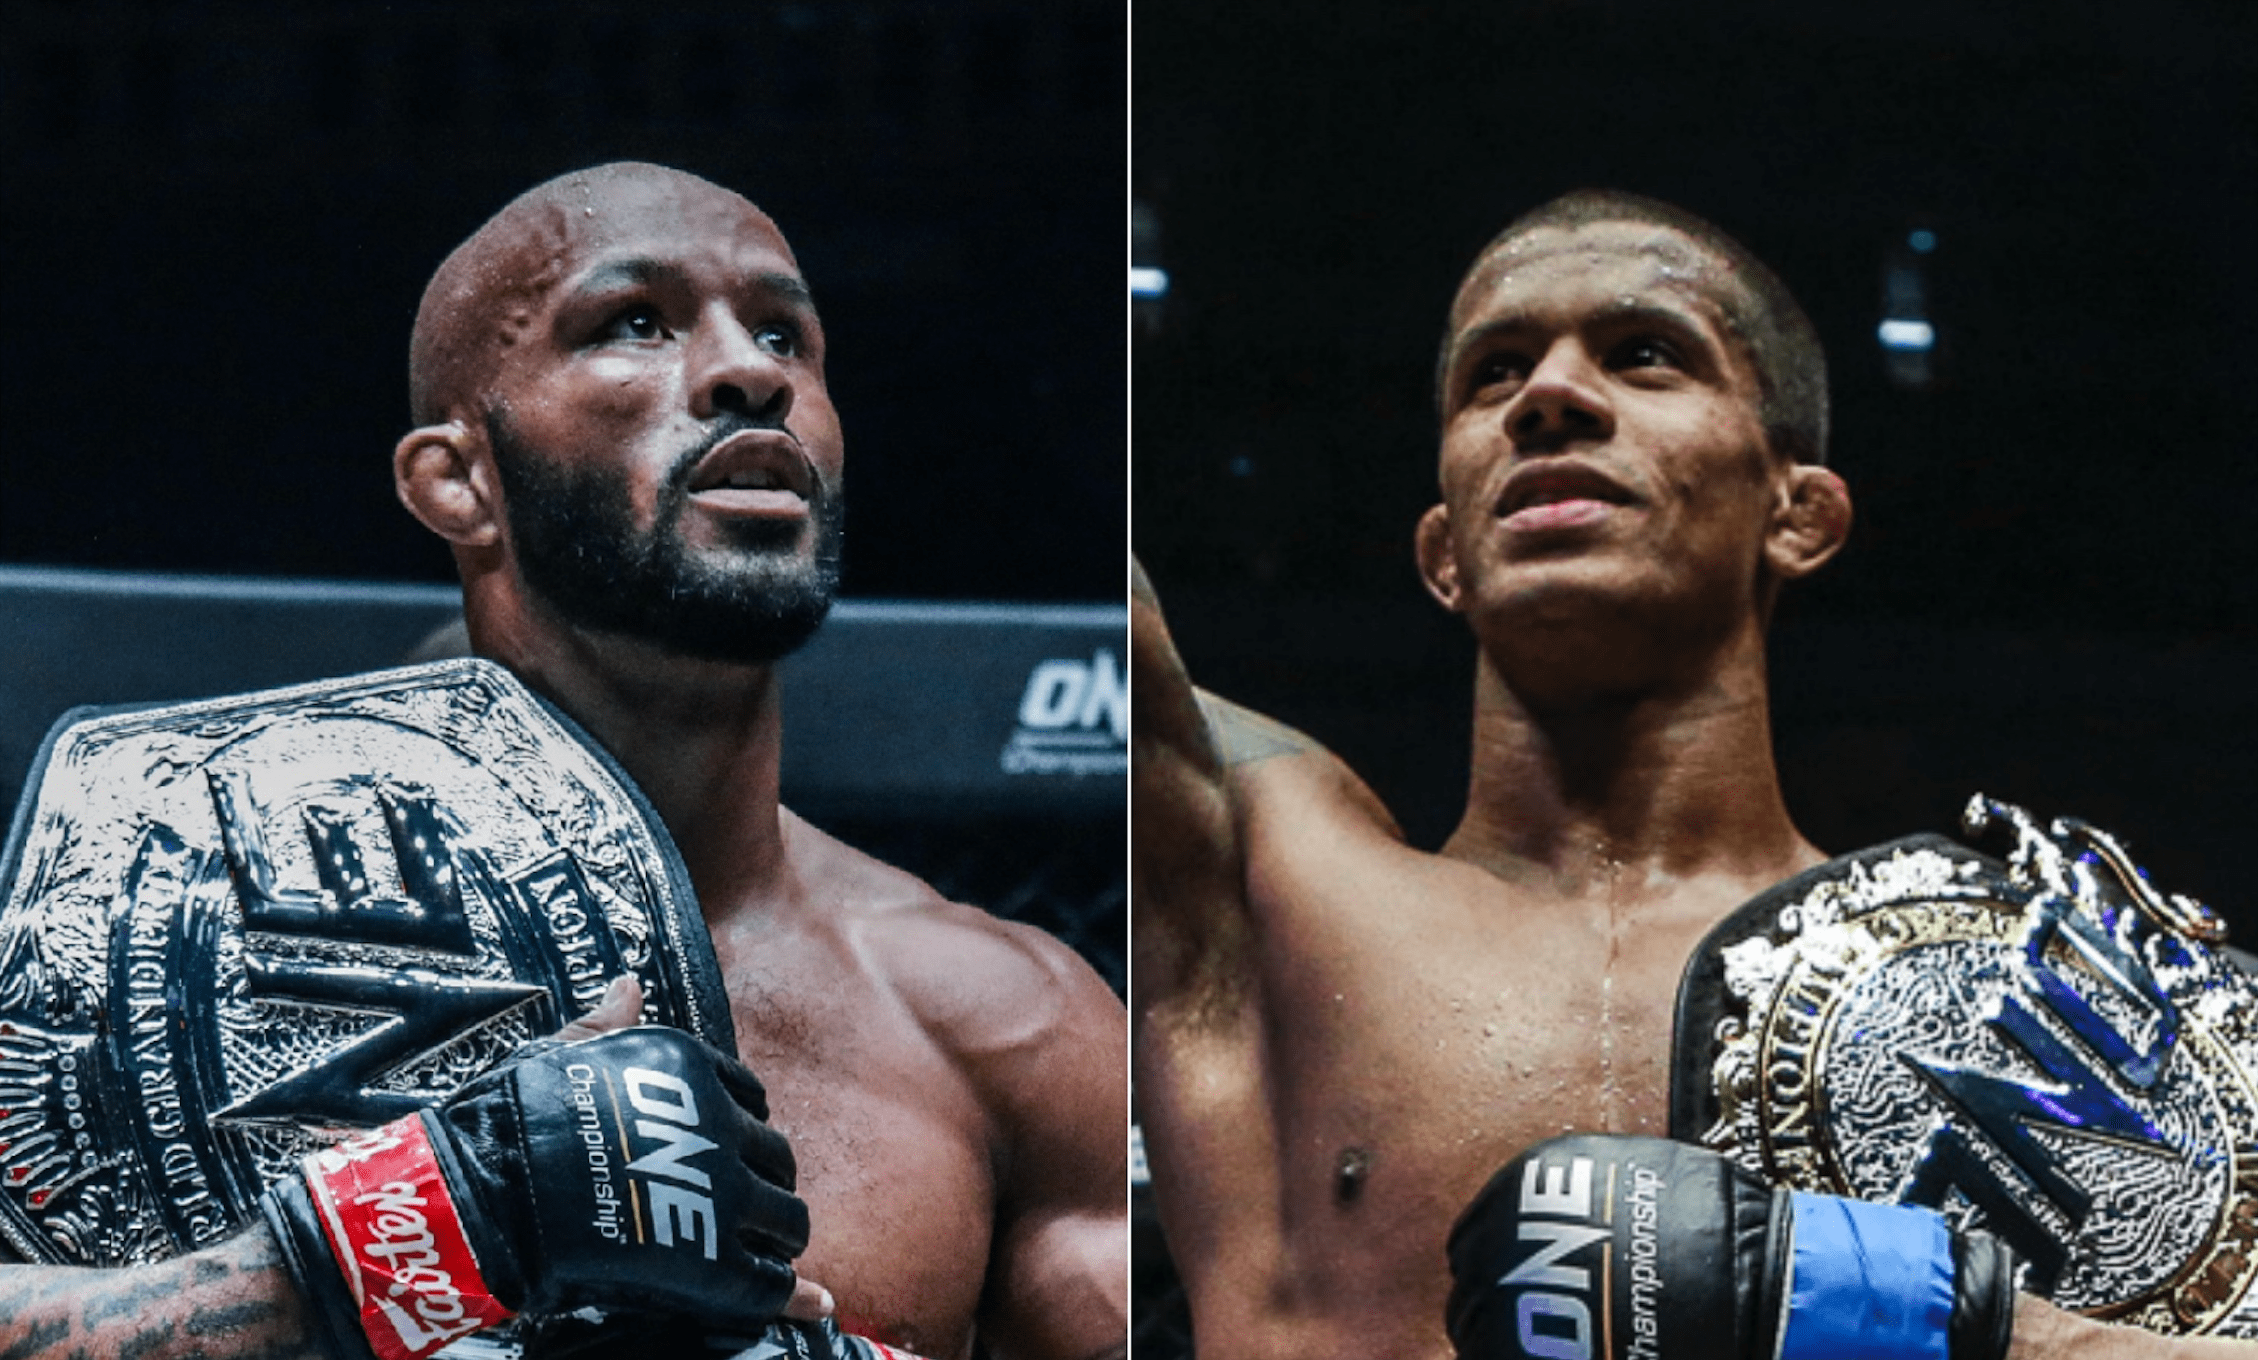 Adriano Moraes Staying Ready For Long-Awaited Mighty Mouse Title Fight